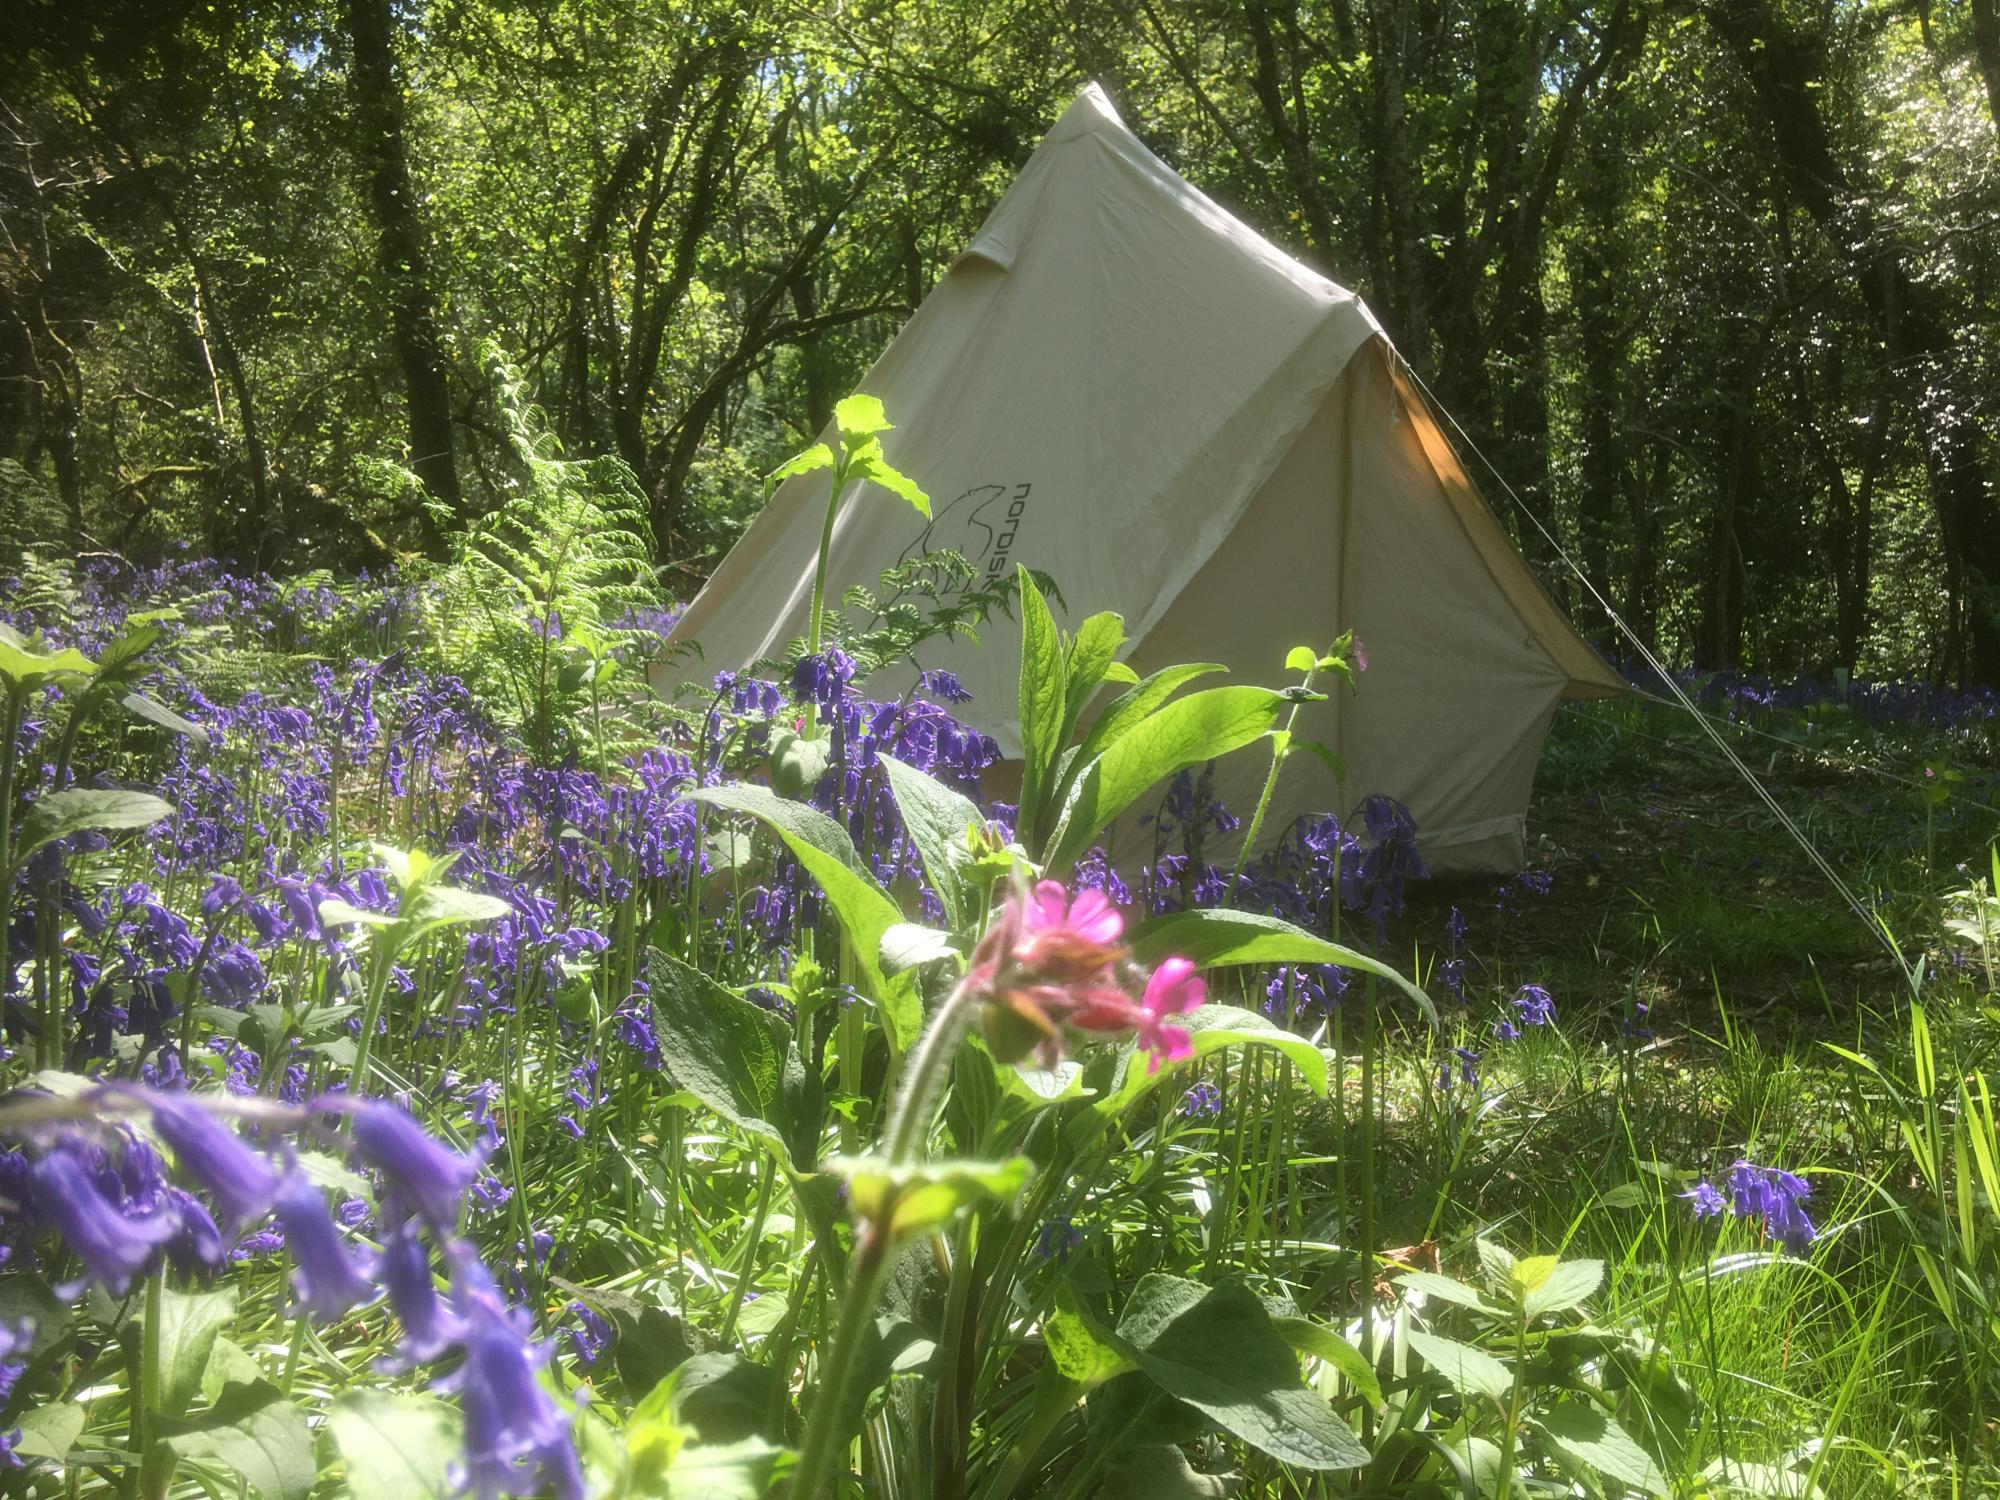 Campsites in The Greener Camping Club holidays at I Love This Campsite